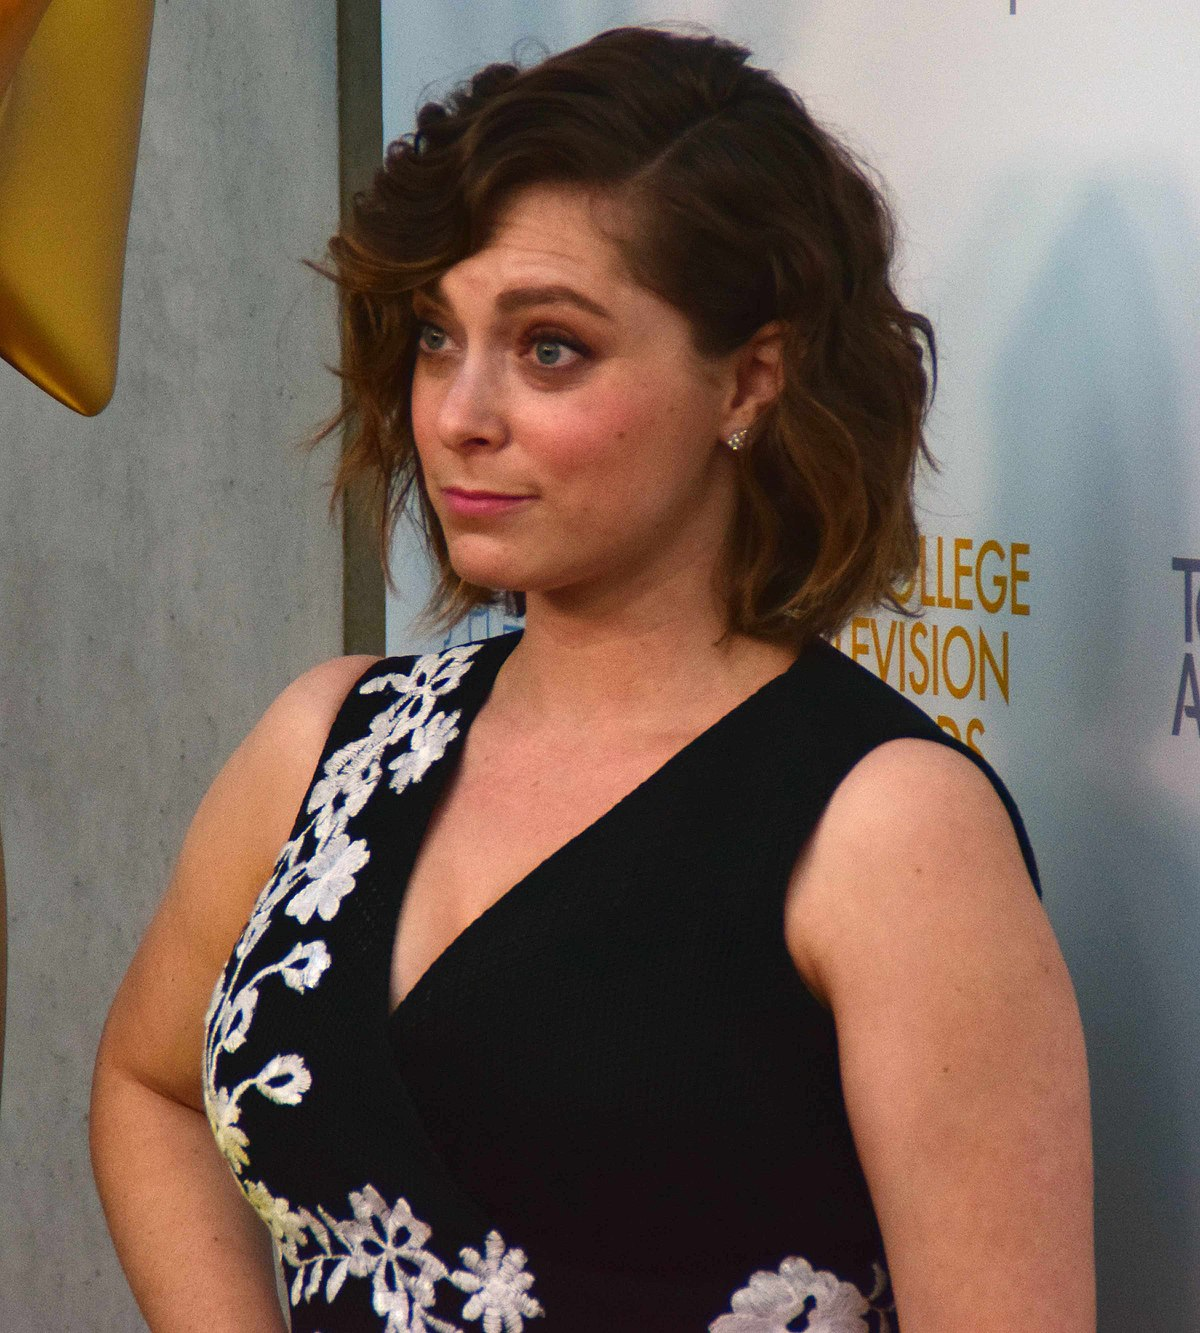 rachel bloom - wikipedia